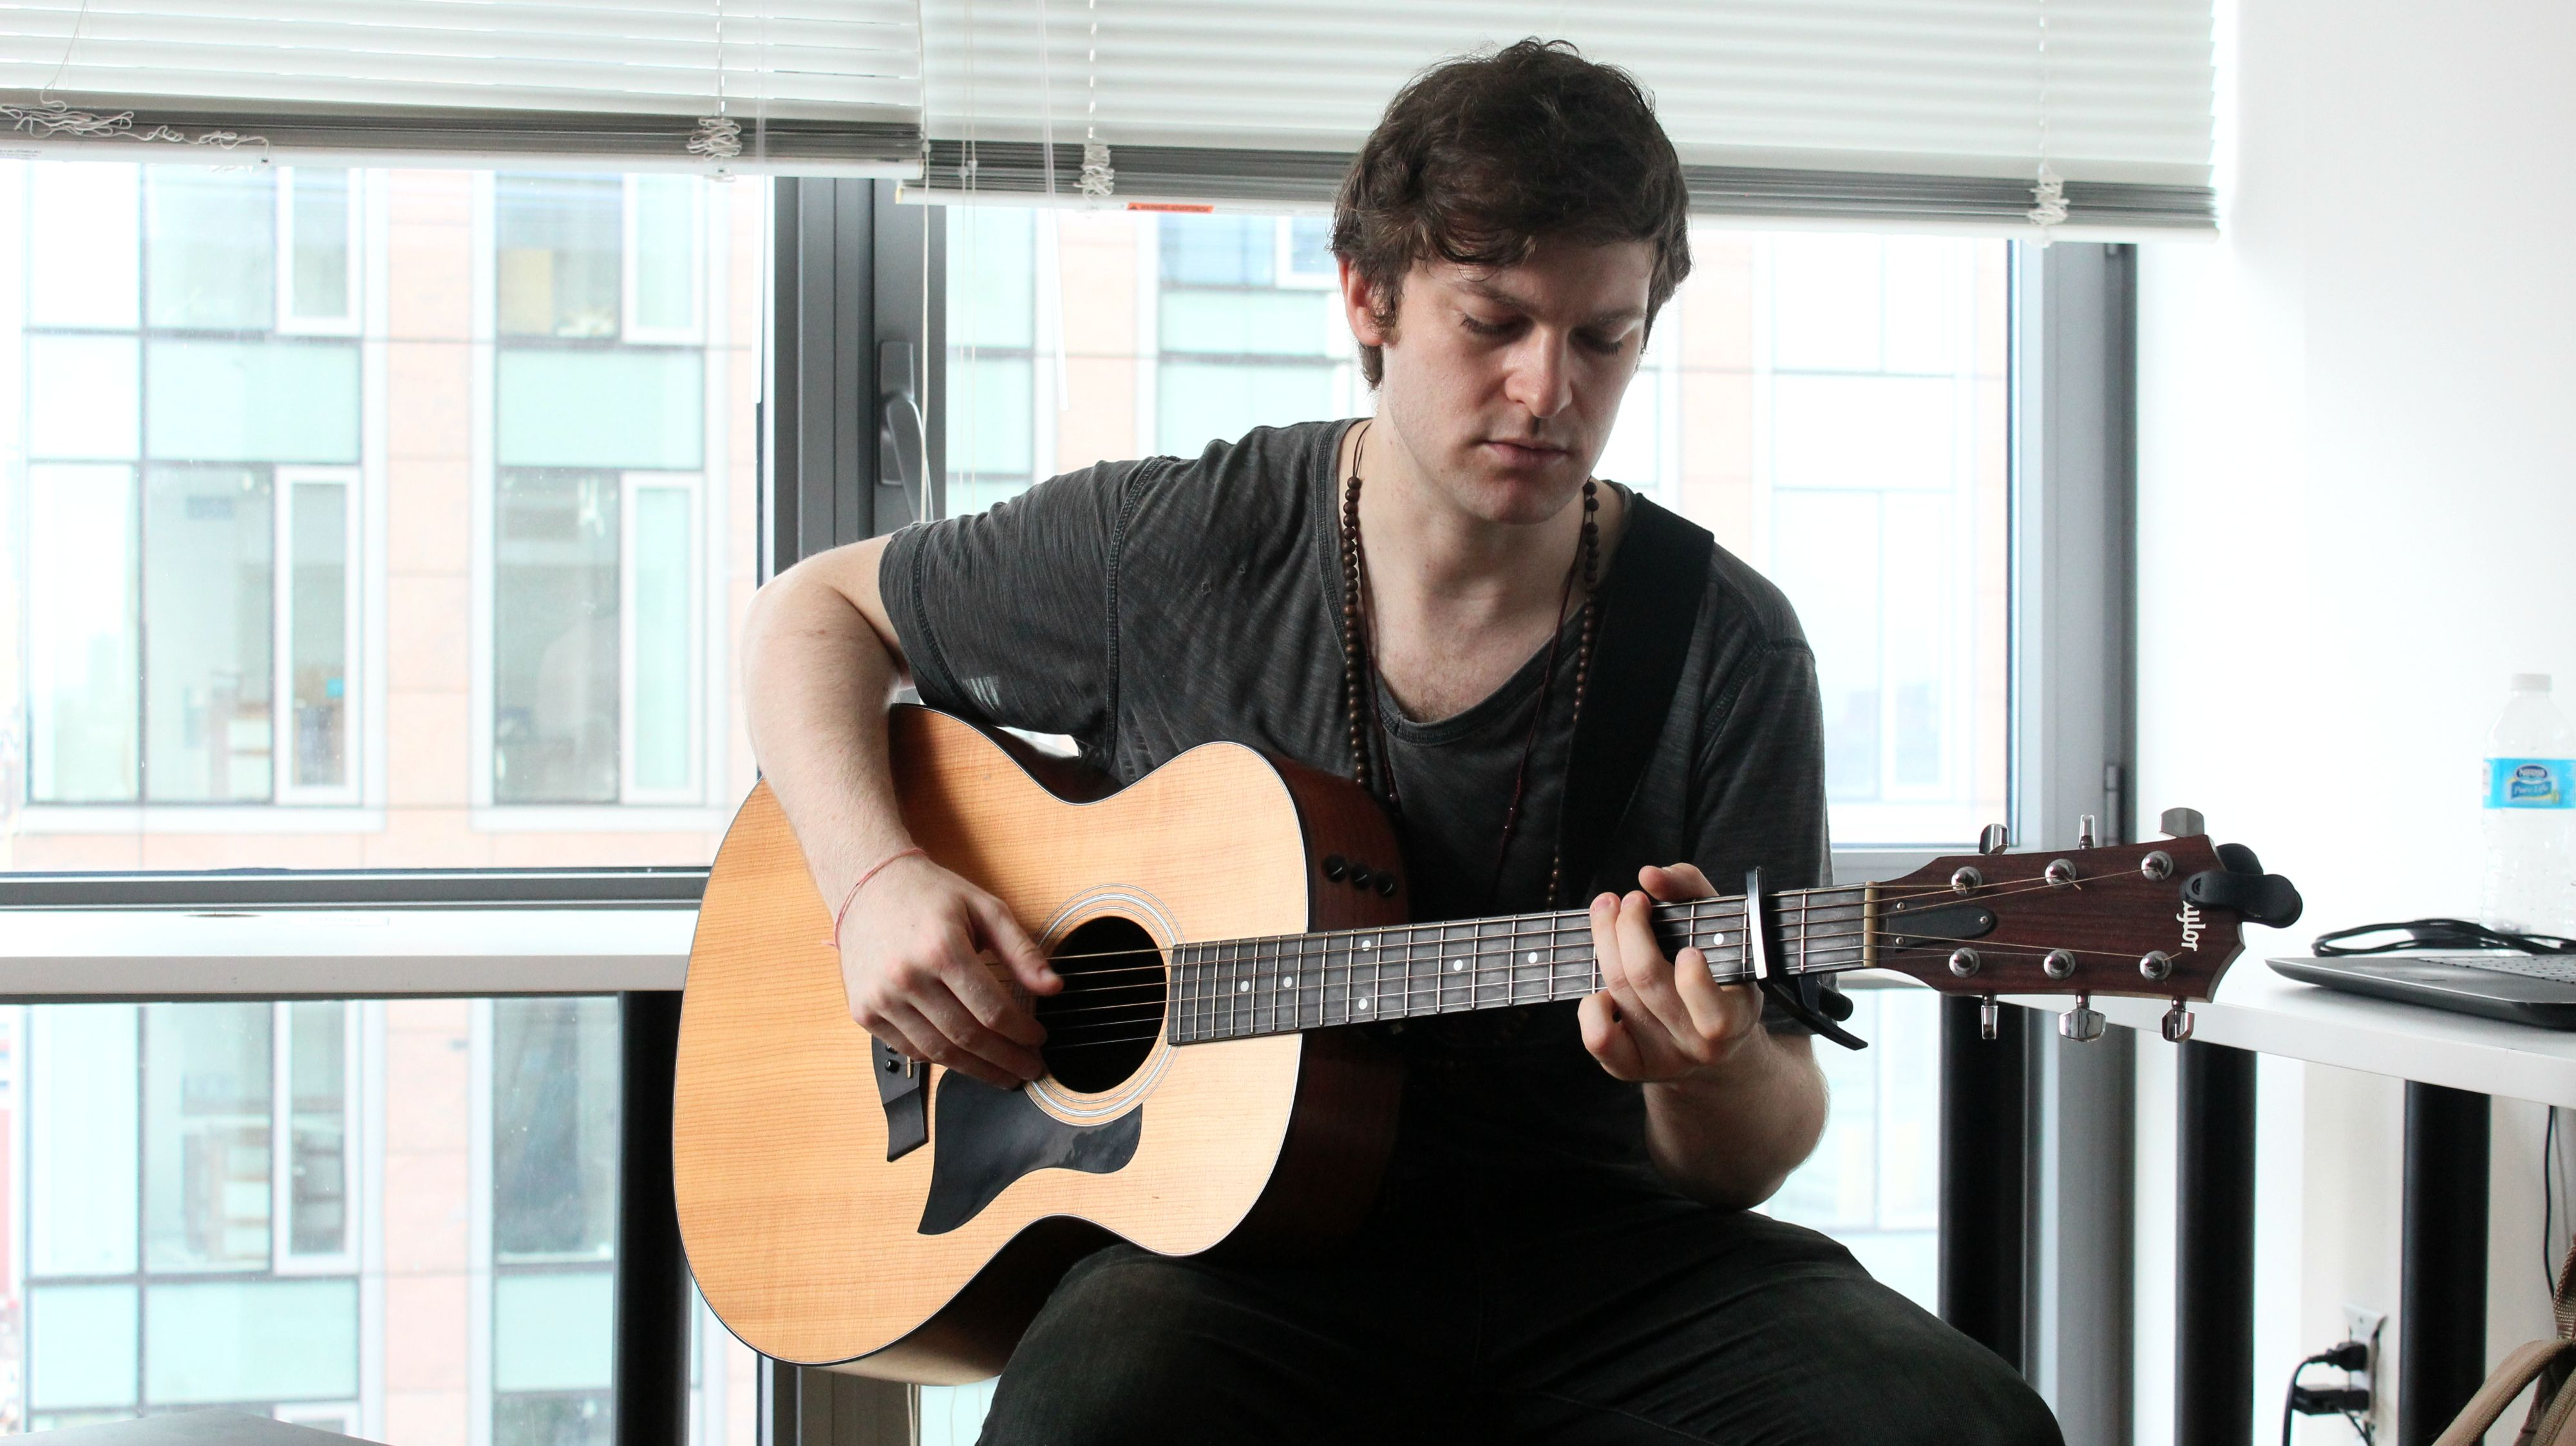 Thank You To Chris Zurich For An Outstanding Performance And Interview At Our Cascadefm Office To Listen To Chris Music Visit Www Cascad Chris Zurich Music